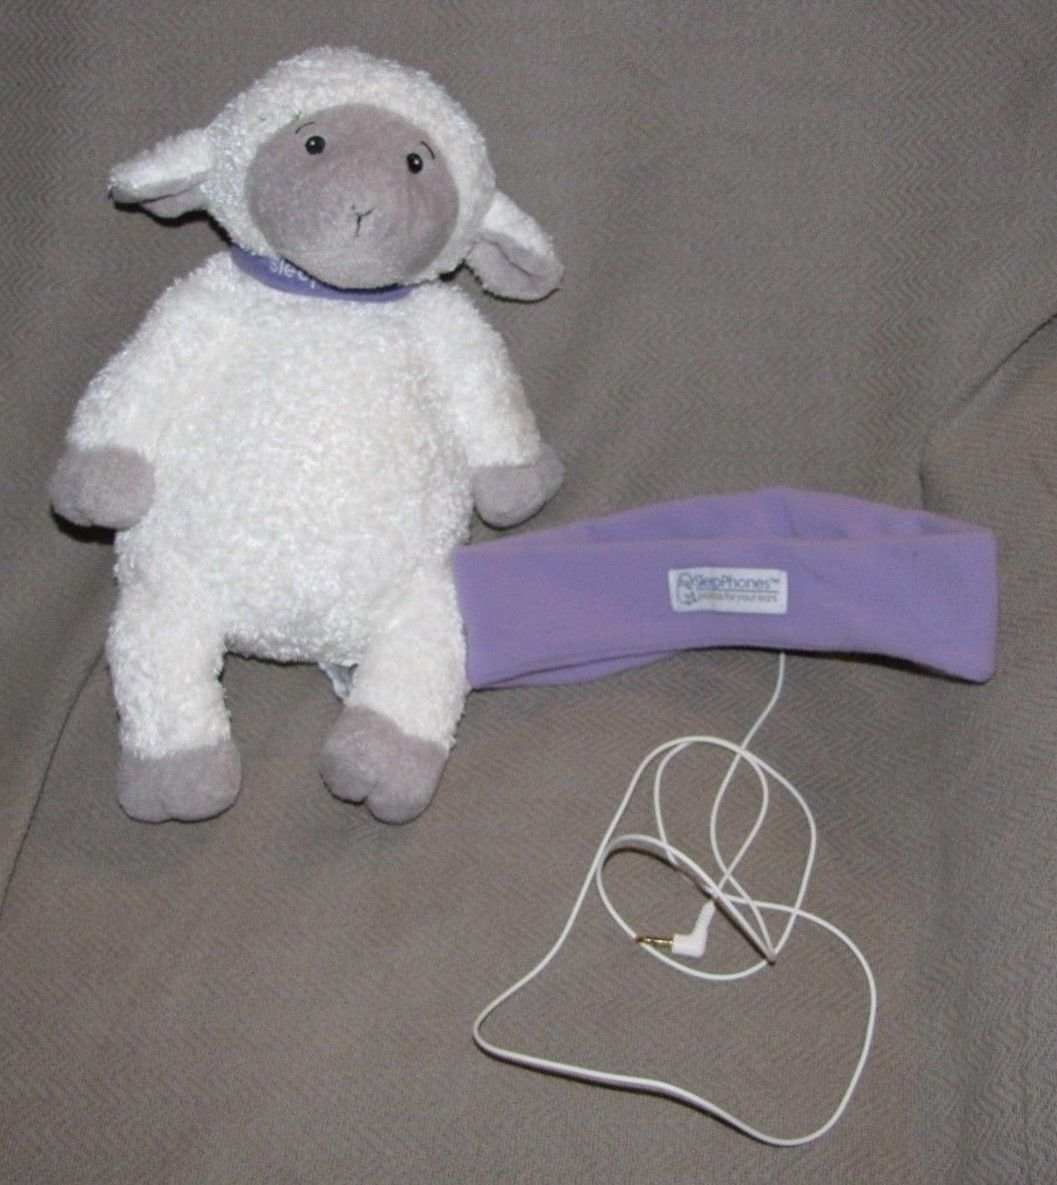 SLEEPPHONES SLEEP PHONES EAR LAVENDER PURPLE FLEECE LAMB SHEEP STUFFED PLUSH